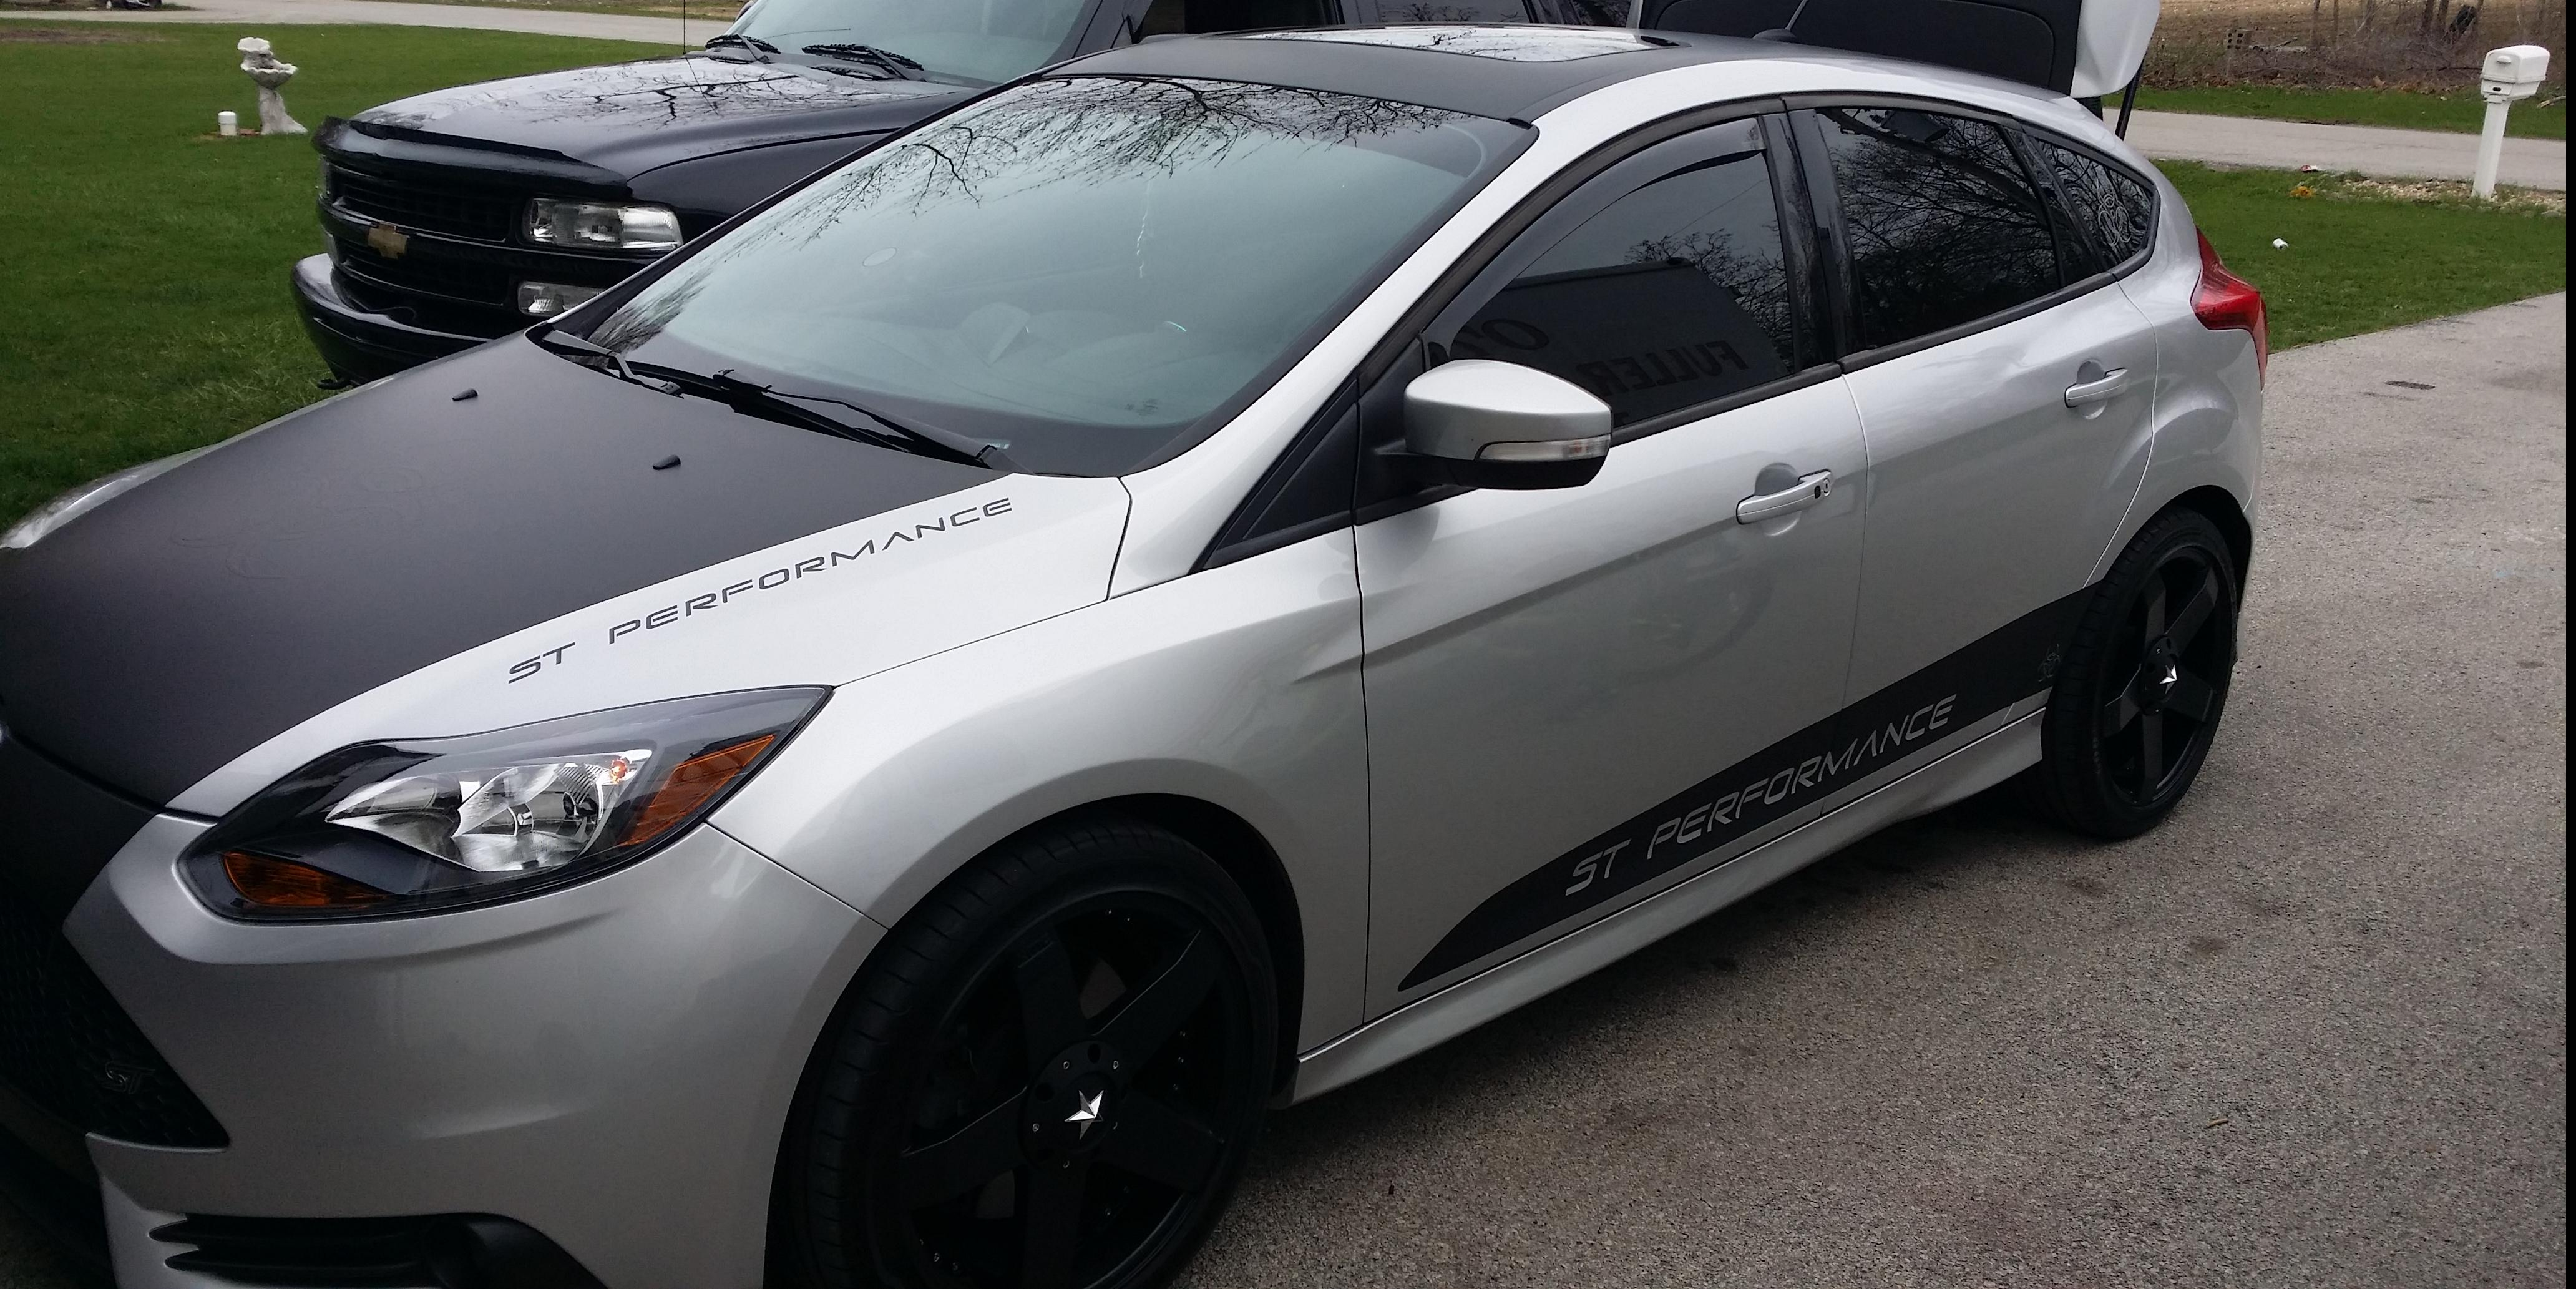 Joe Schoonover's 2013 Ford Focus-ST